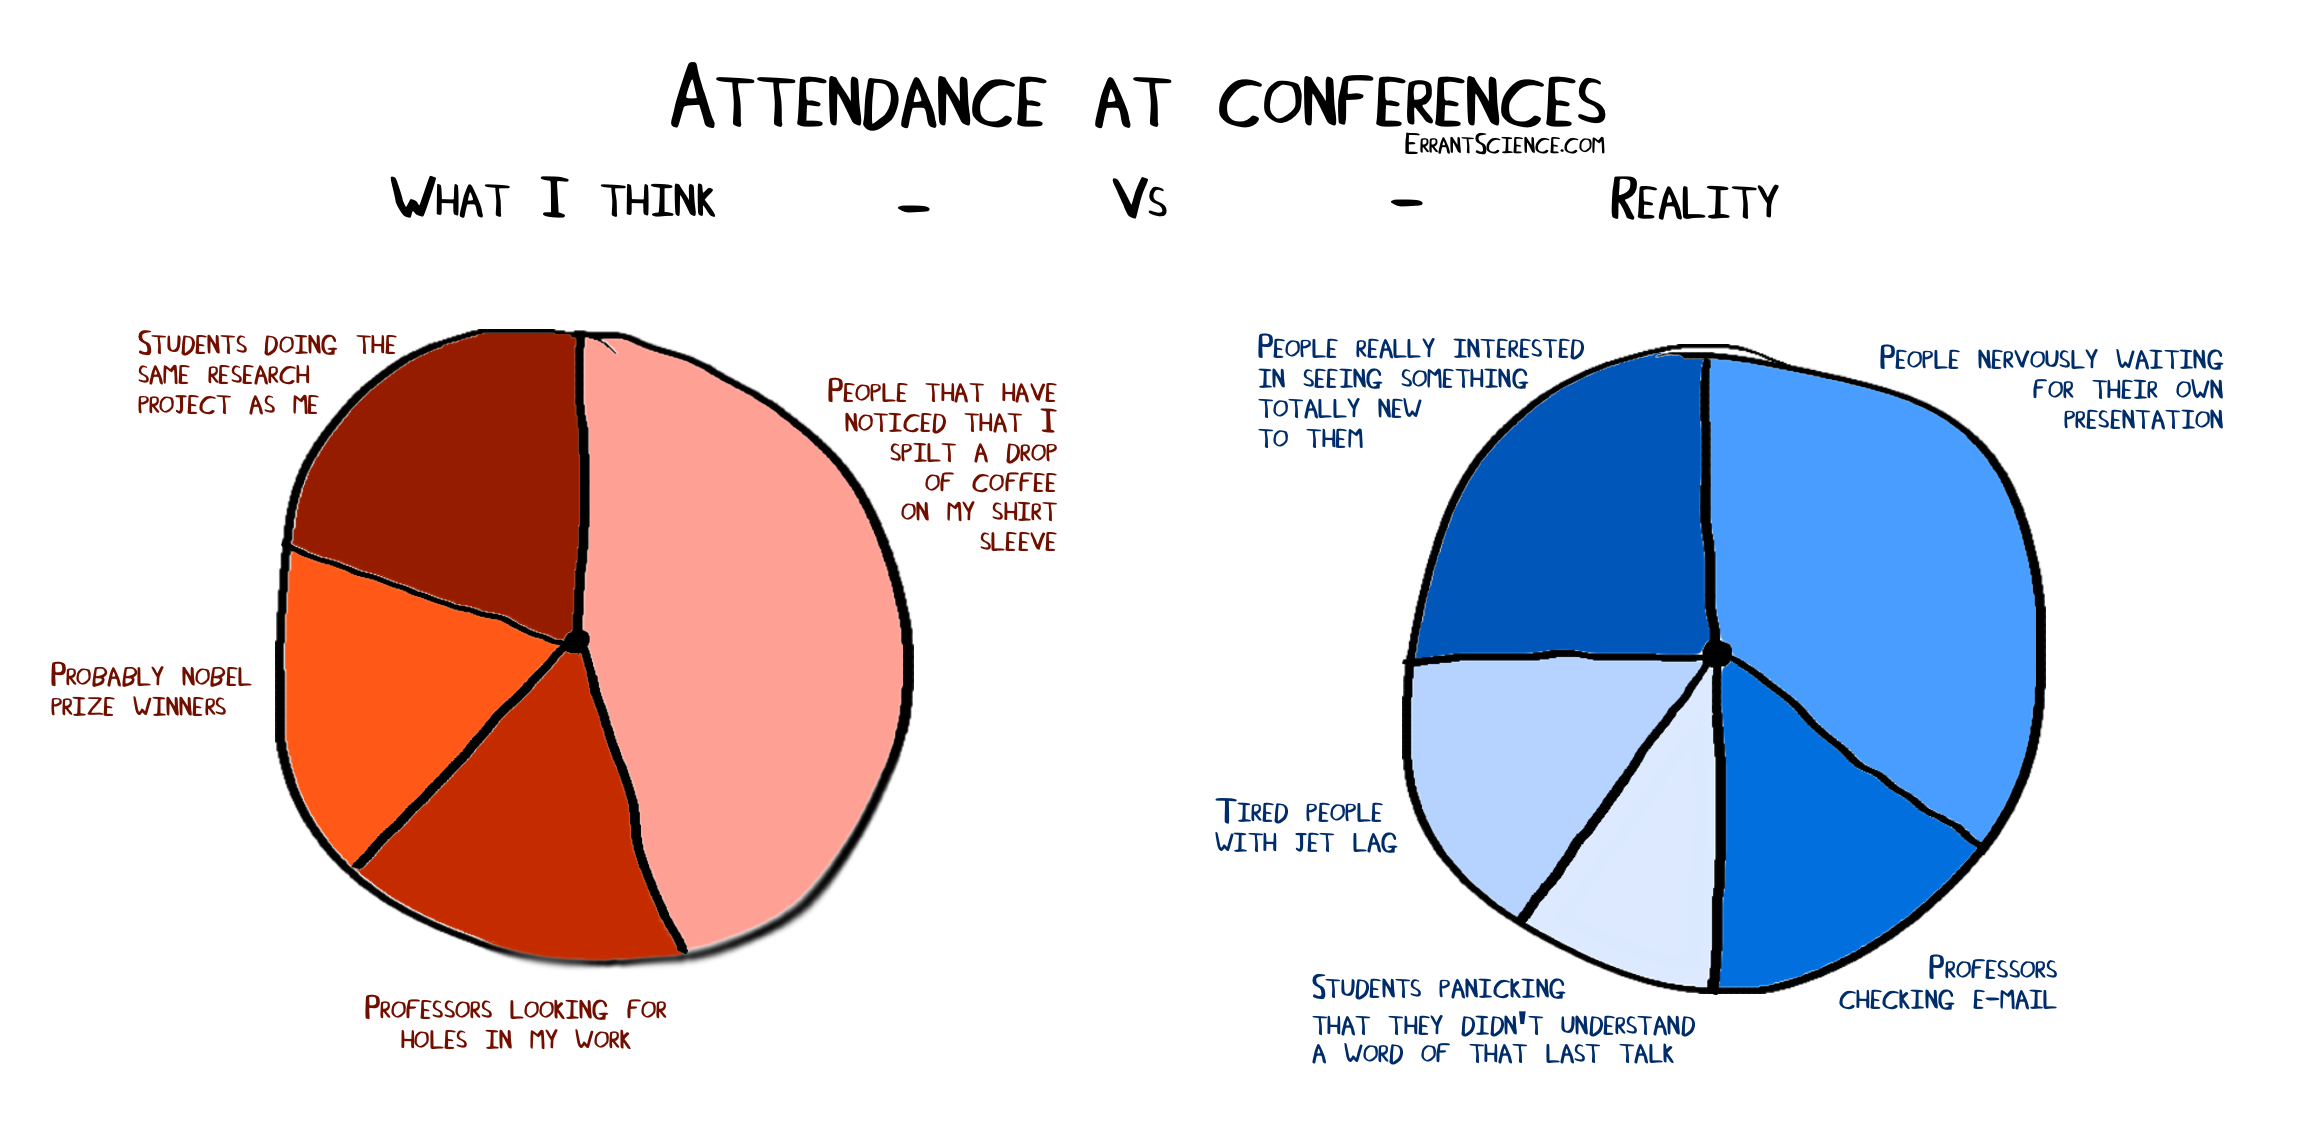 Attendance at confreneces